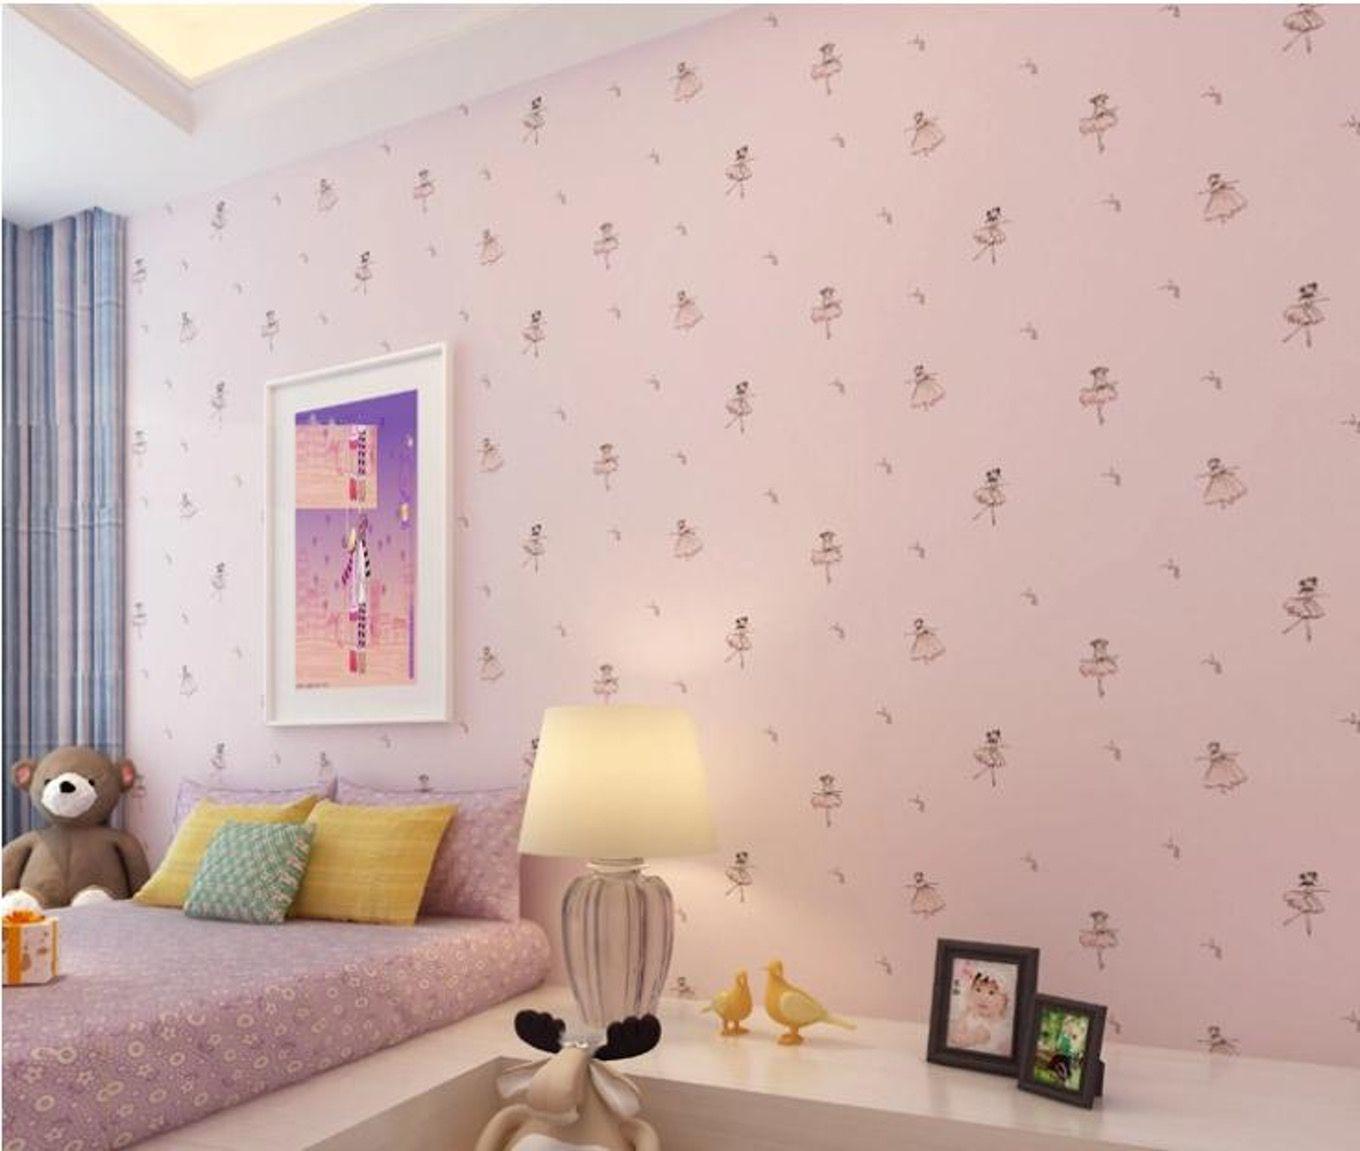 2019 baby room wallpaper uk best paint to paint furniture check